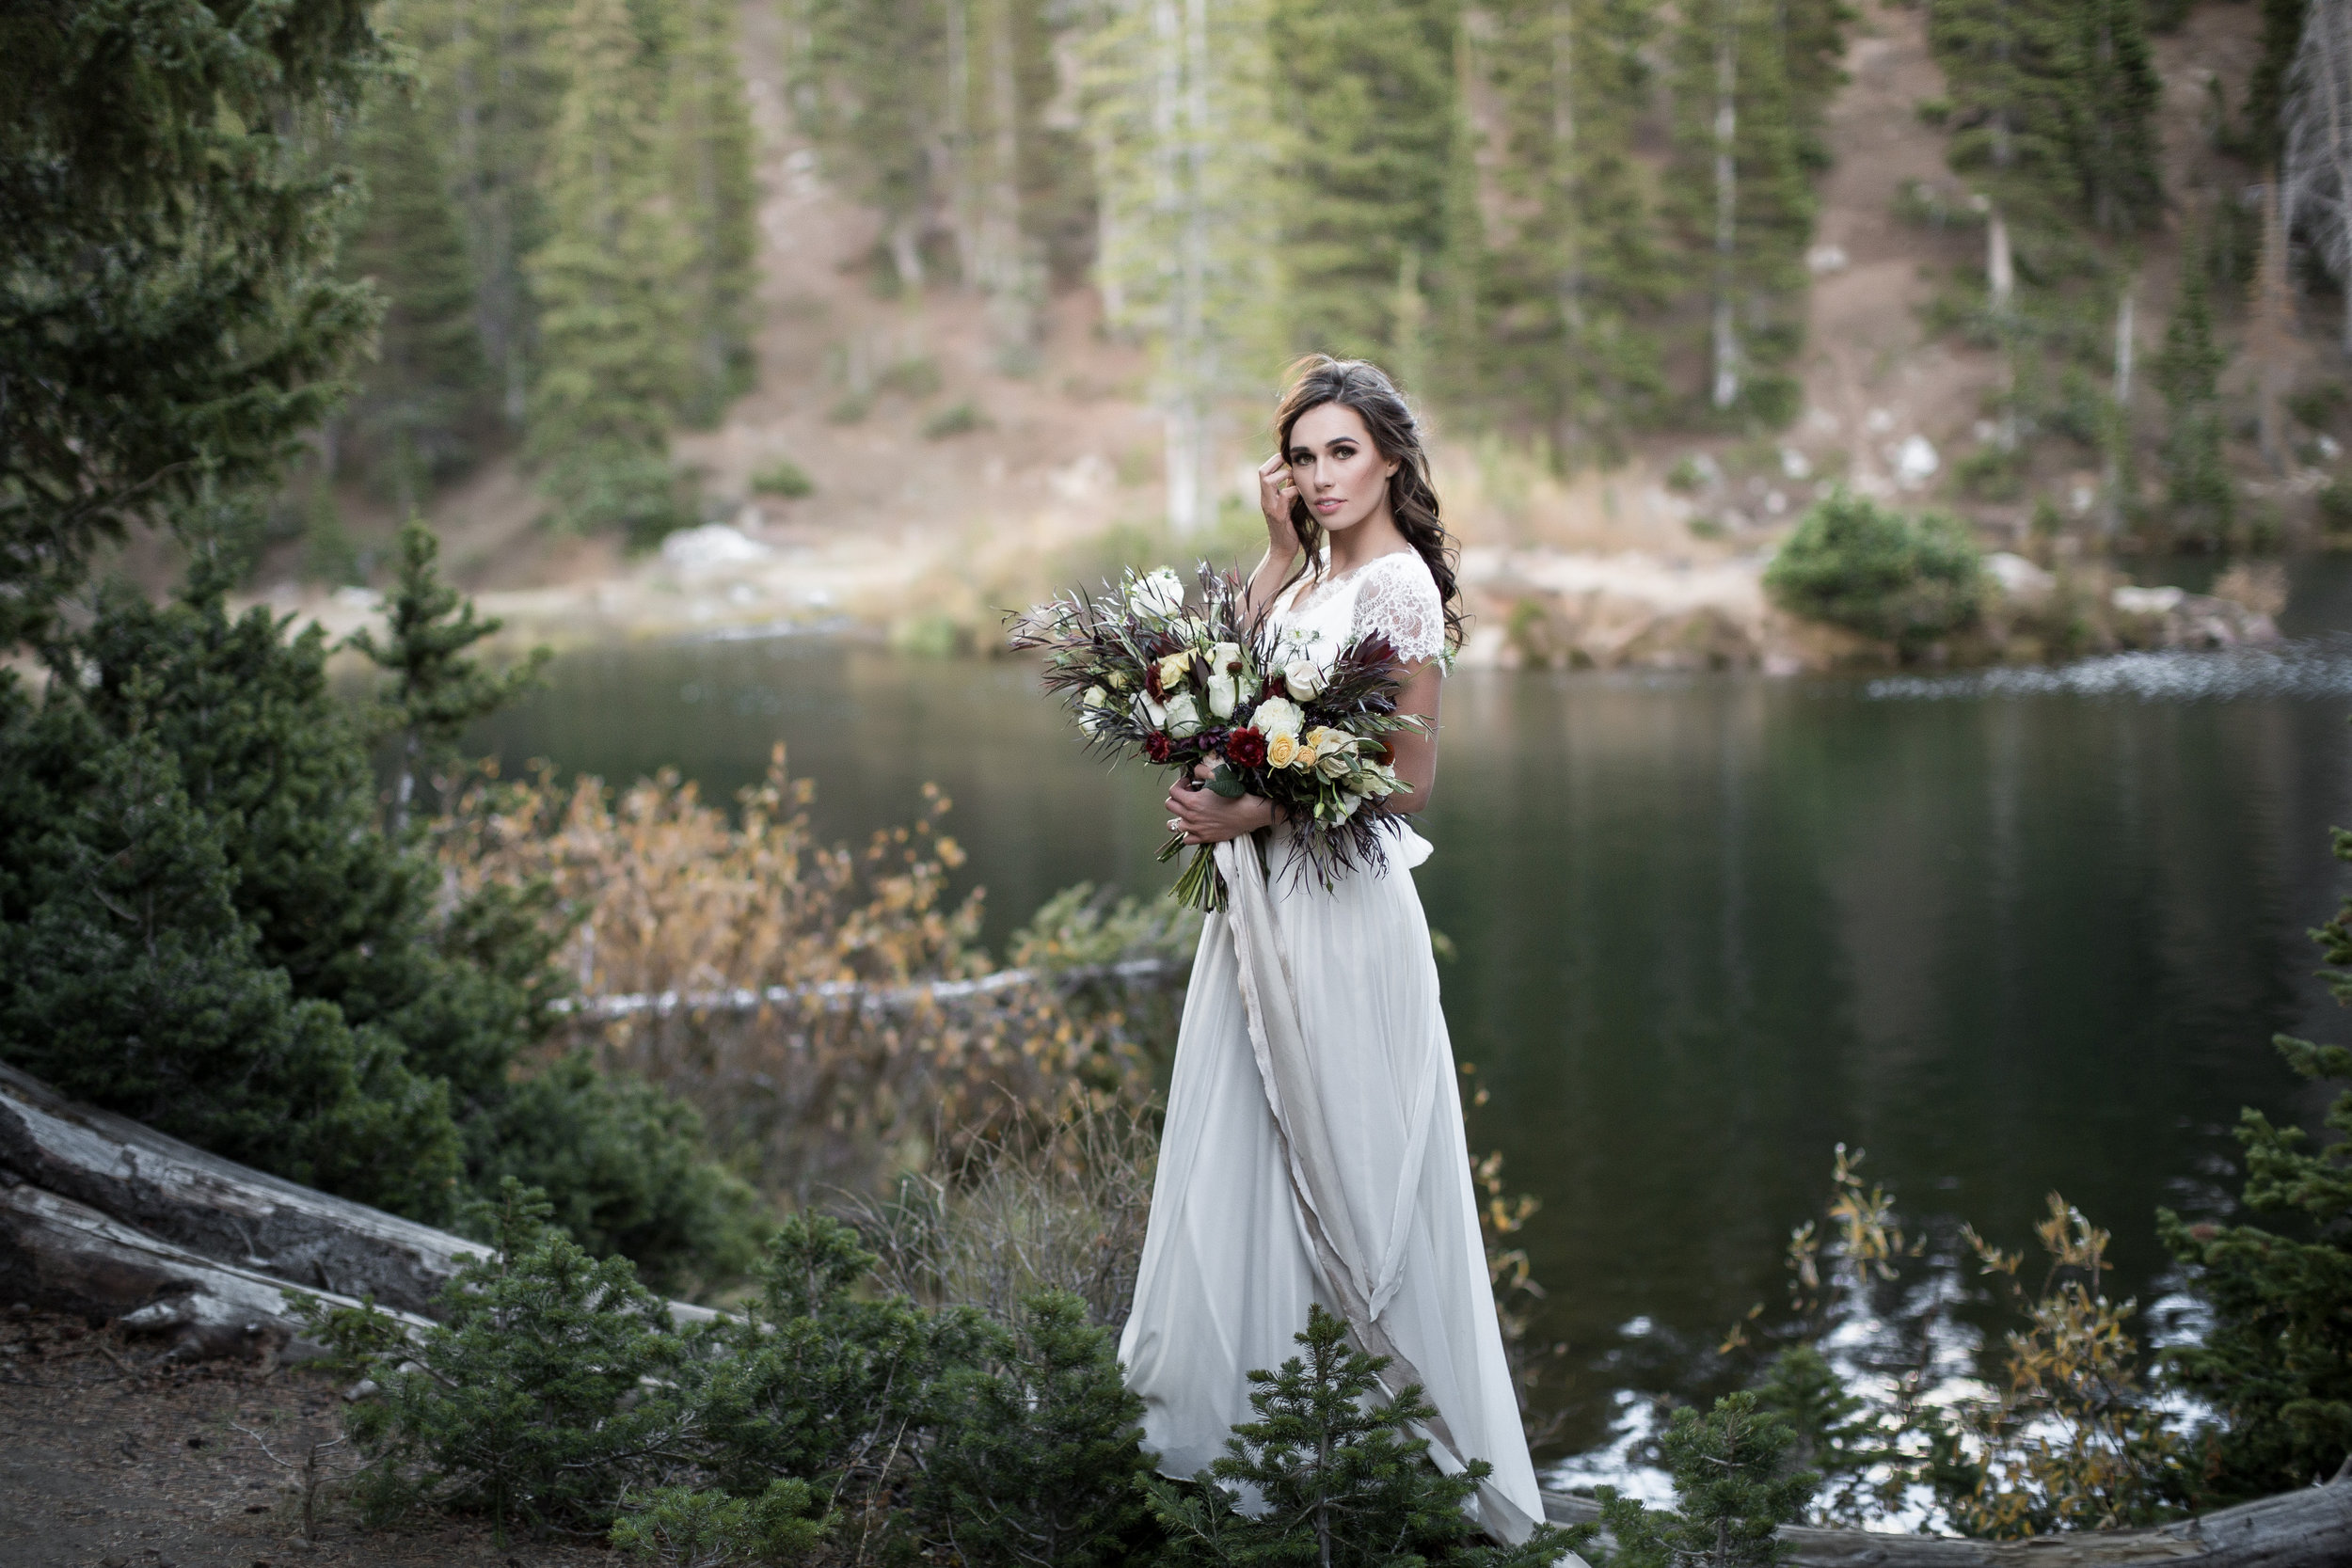 UtahValleyBrideShootTR2016 (48 of 110).jpg